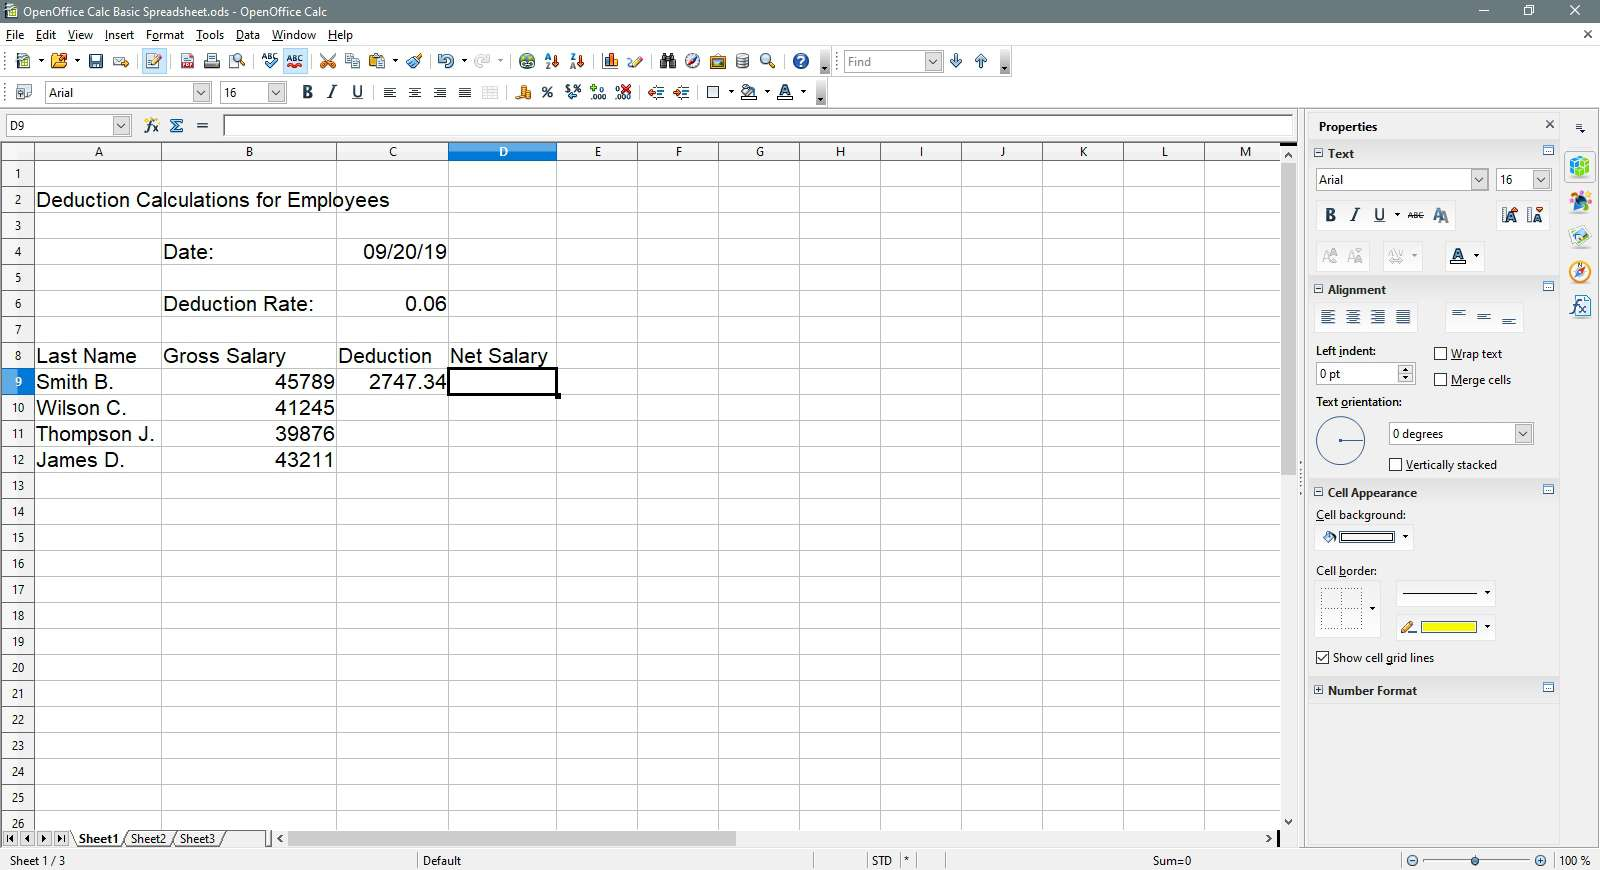 The cell D9 is selected in OpenOffice Calc.